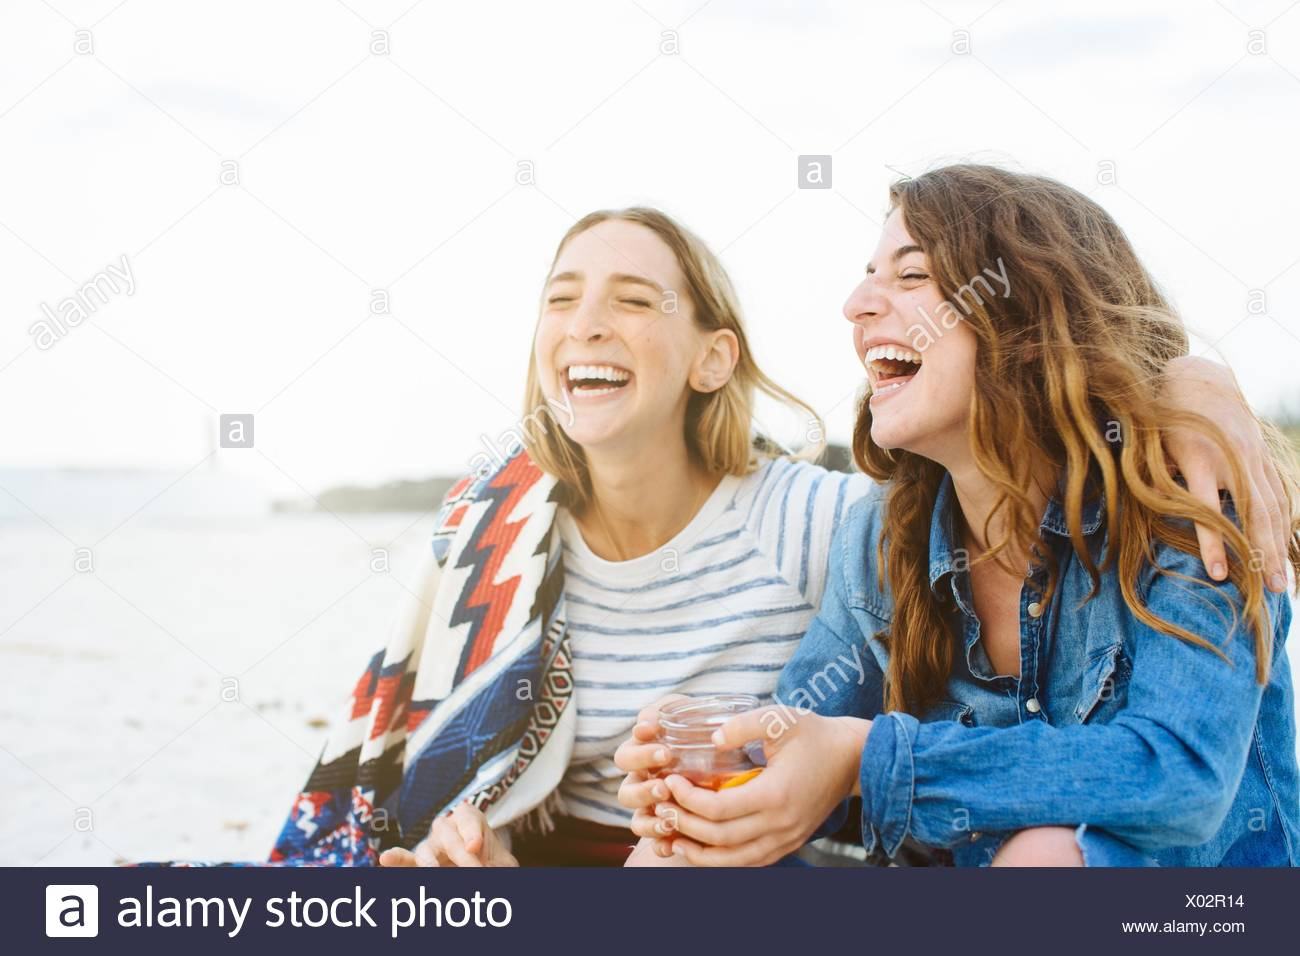 Two young female friends laughing on beach - Stock Image